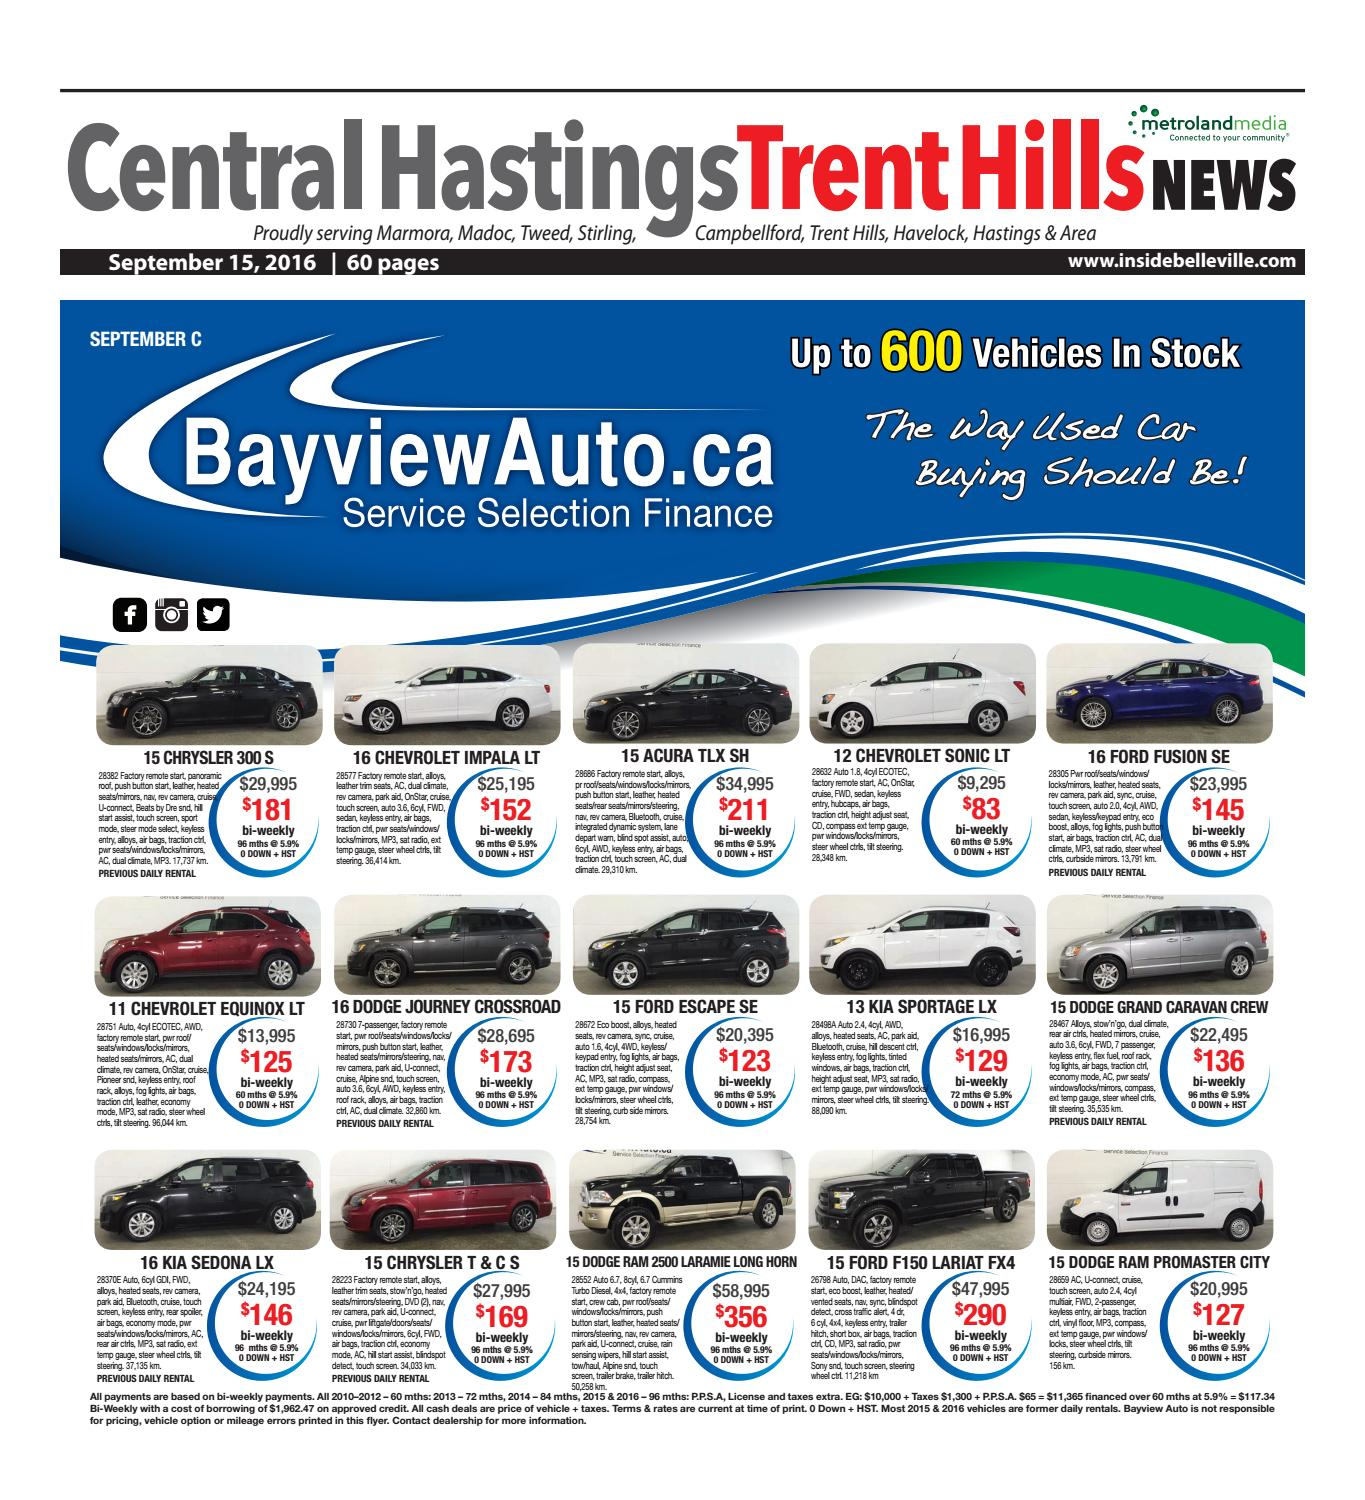 308aac953b7 Chth091516 by Metroland East - Central Hastings News - issuu